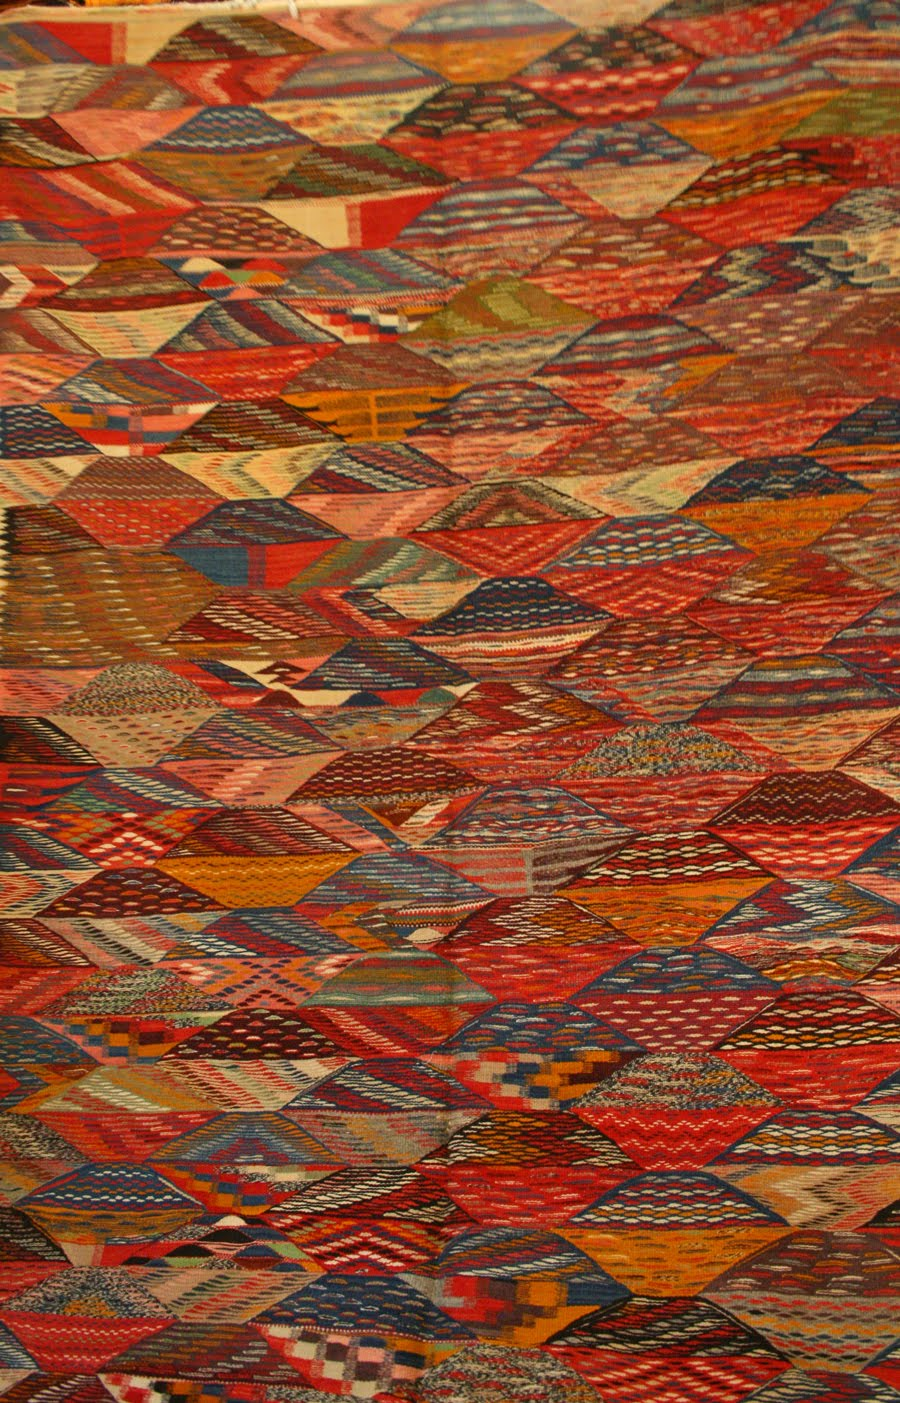 THE VIEW FROM FEZ: Beginners' Guide to Moroccan Carpets ...